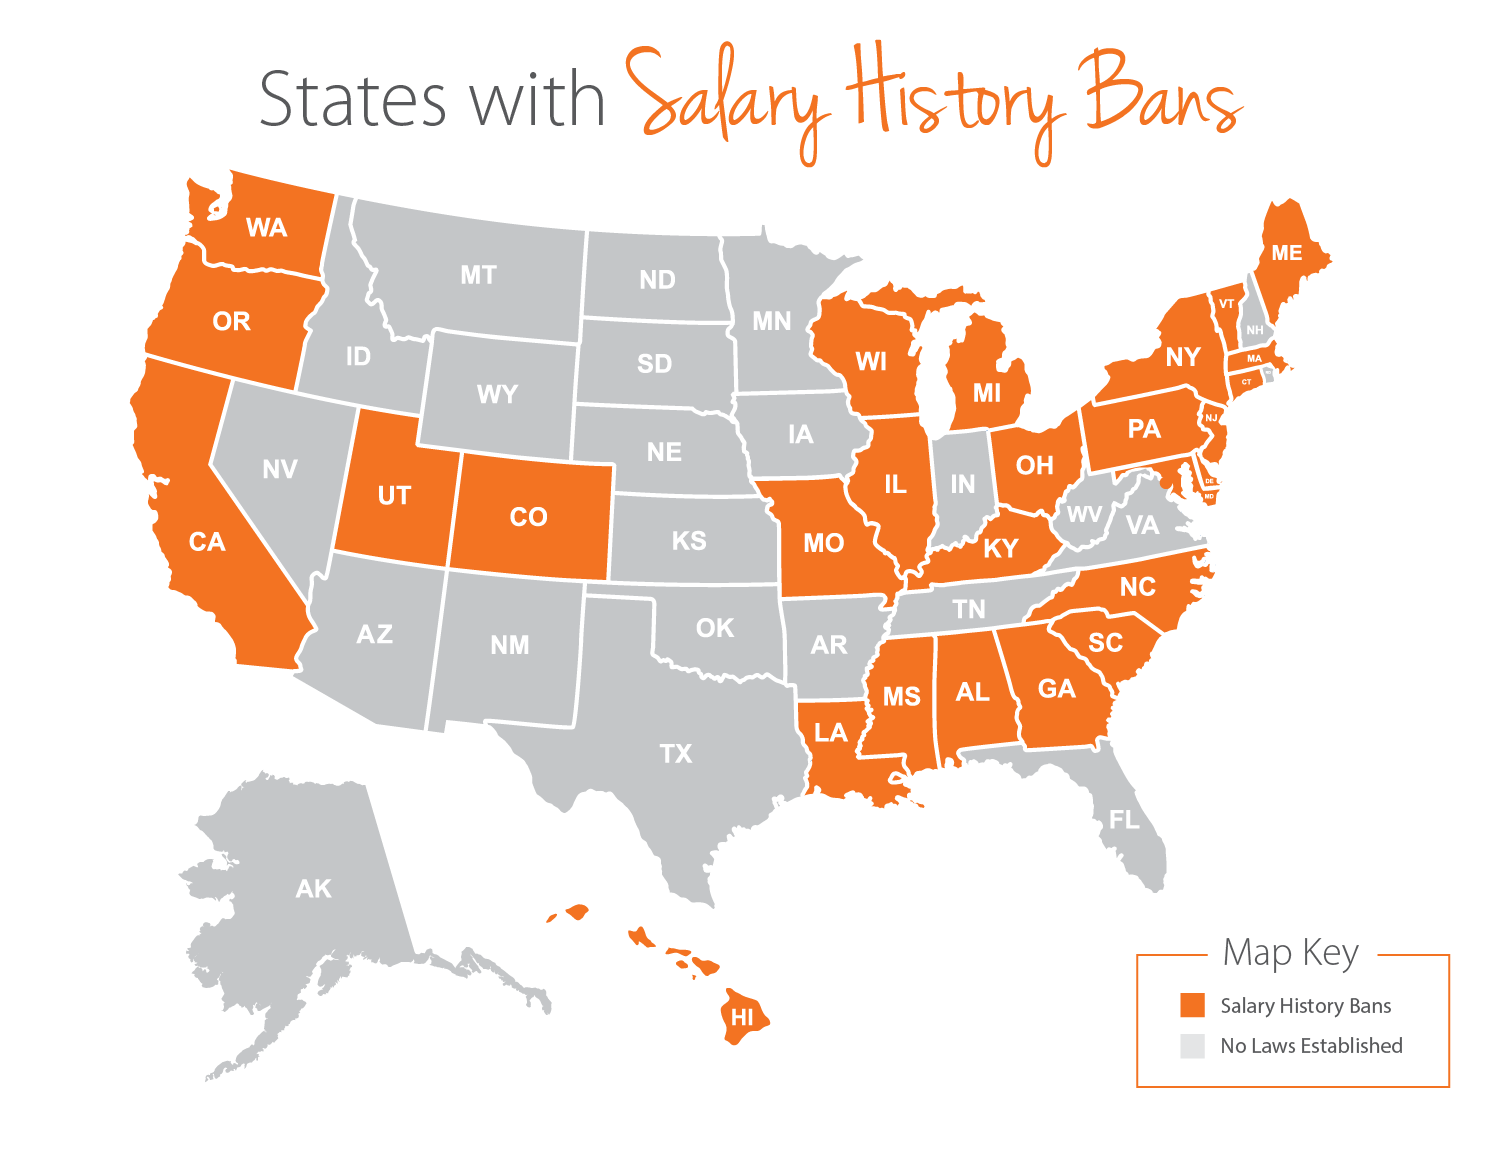 states with salary history bans